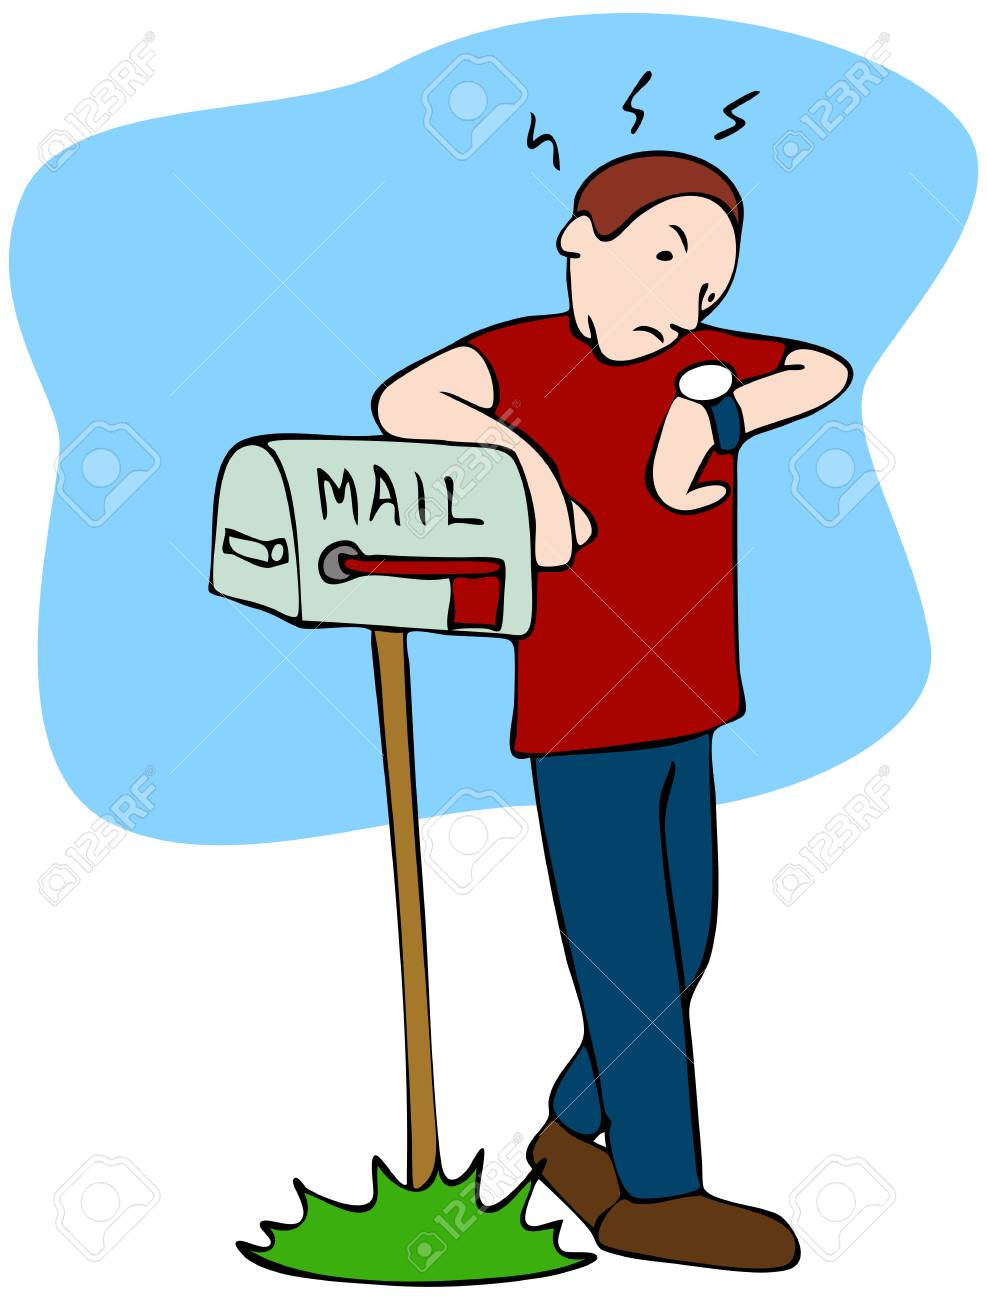 Waiting For Mail >> An Image Of A Man Waiting For The Mailman To Bring The Mail Royalty